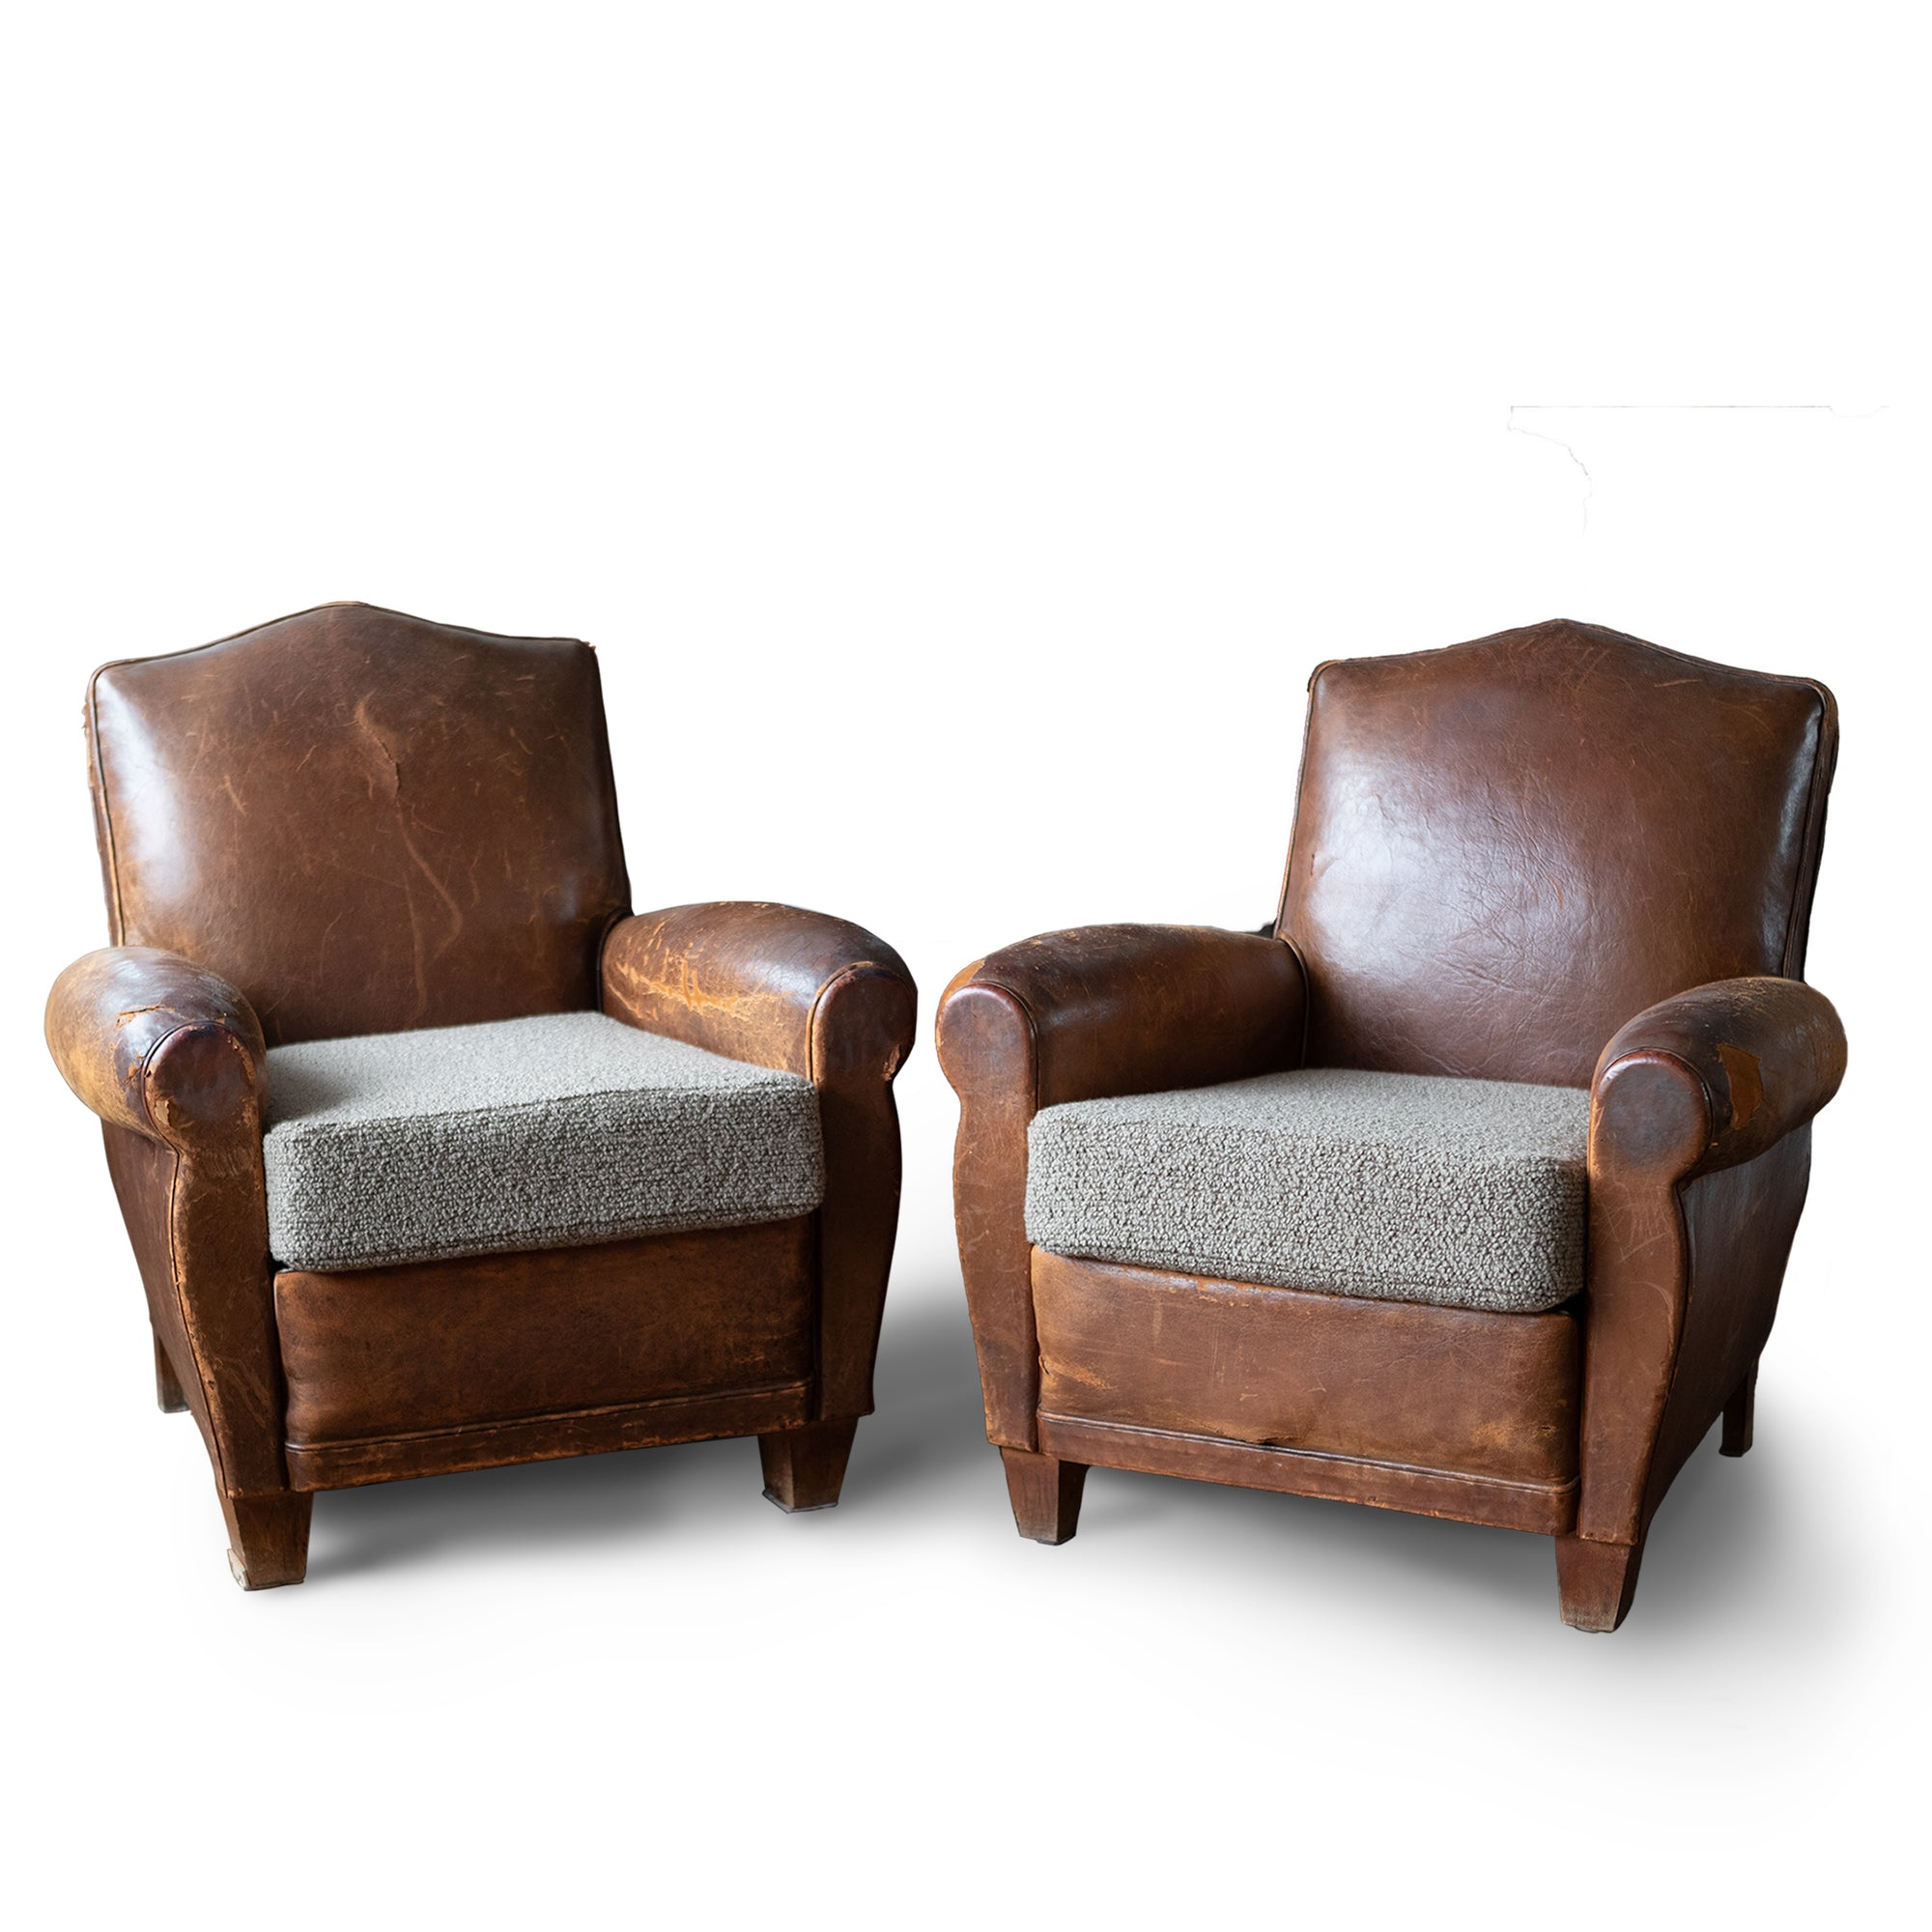 Pair of Antique Brown Leather Club Chairs | The Architectural Forum